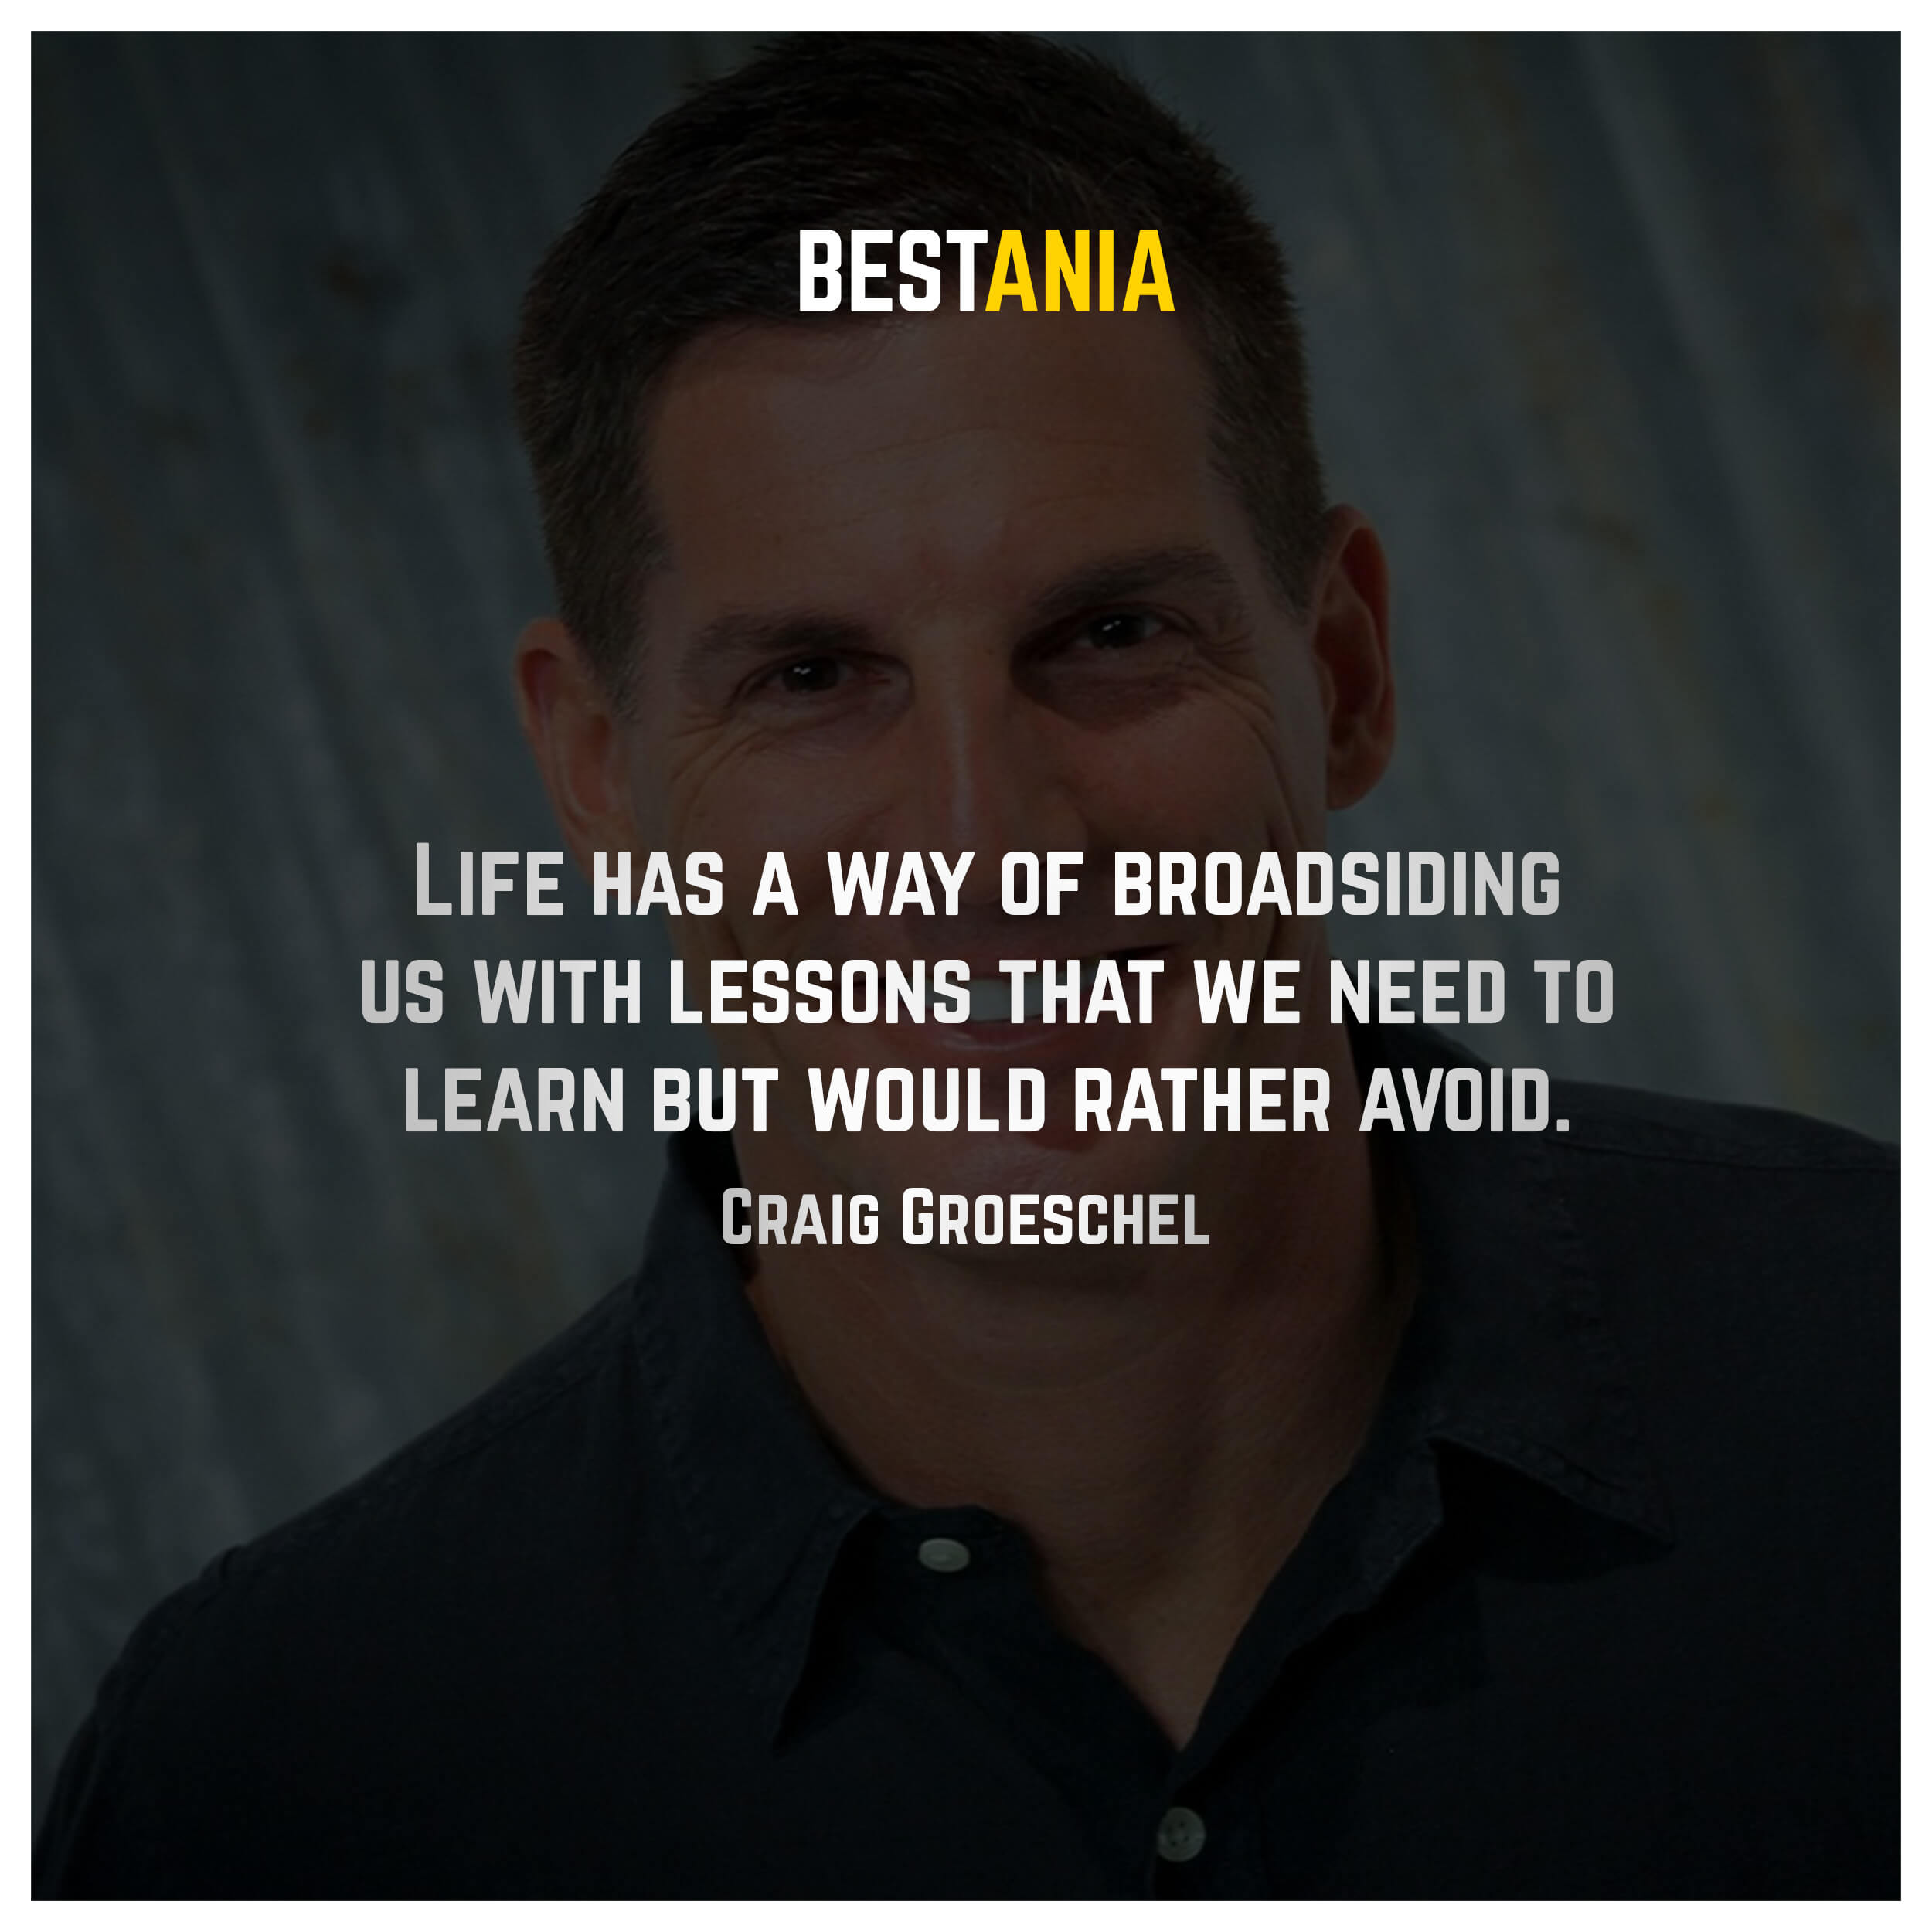 Life has a way of broadsiding us with lessons that we need to learn but would rather avoid. Craig Groeschel